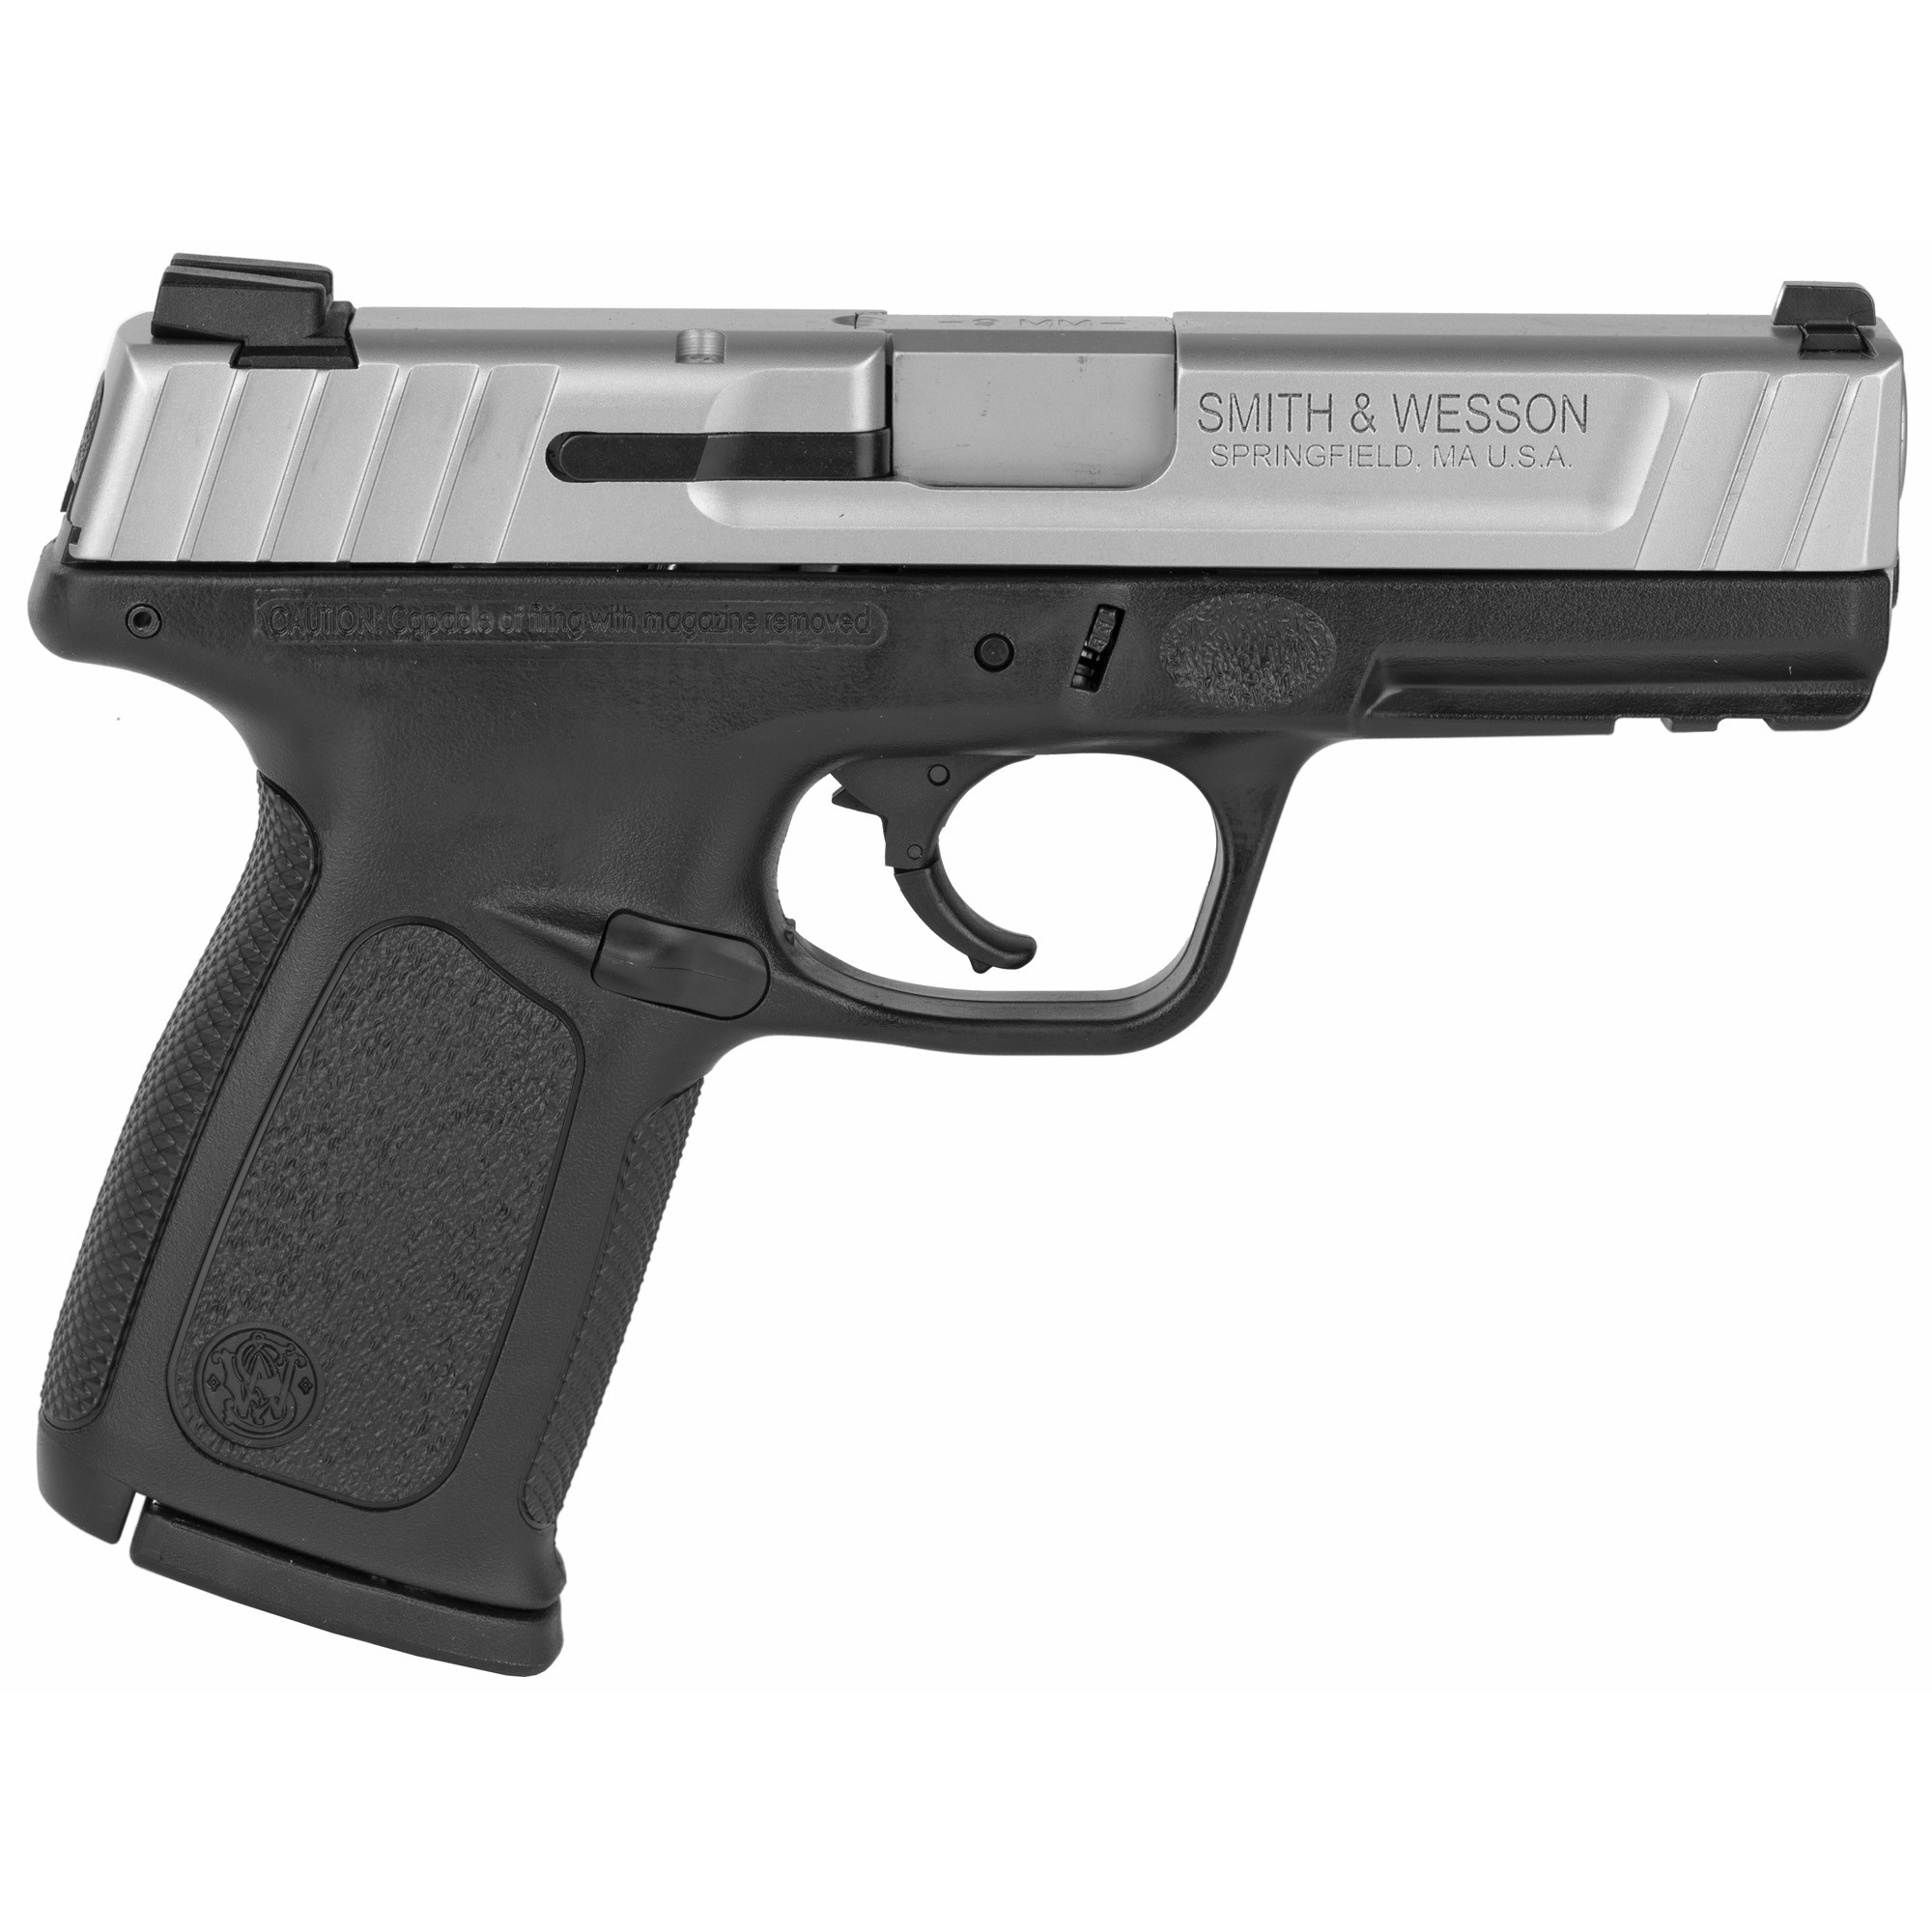 Smith & Wesson SD VE No Thumb Safety 9mm Luger Pistol